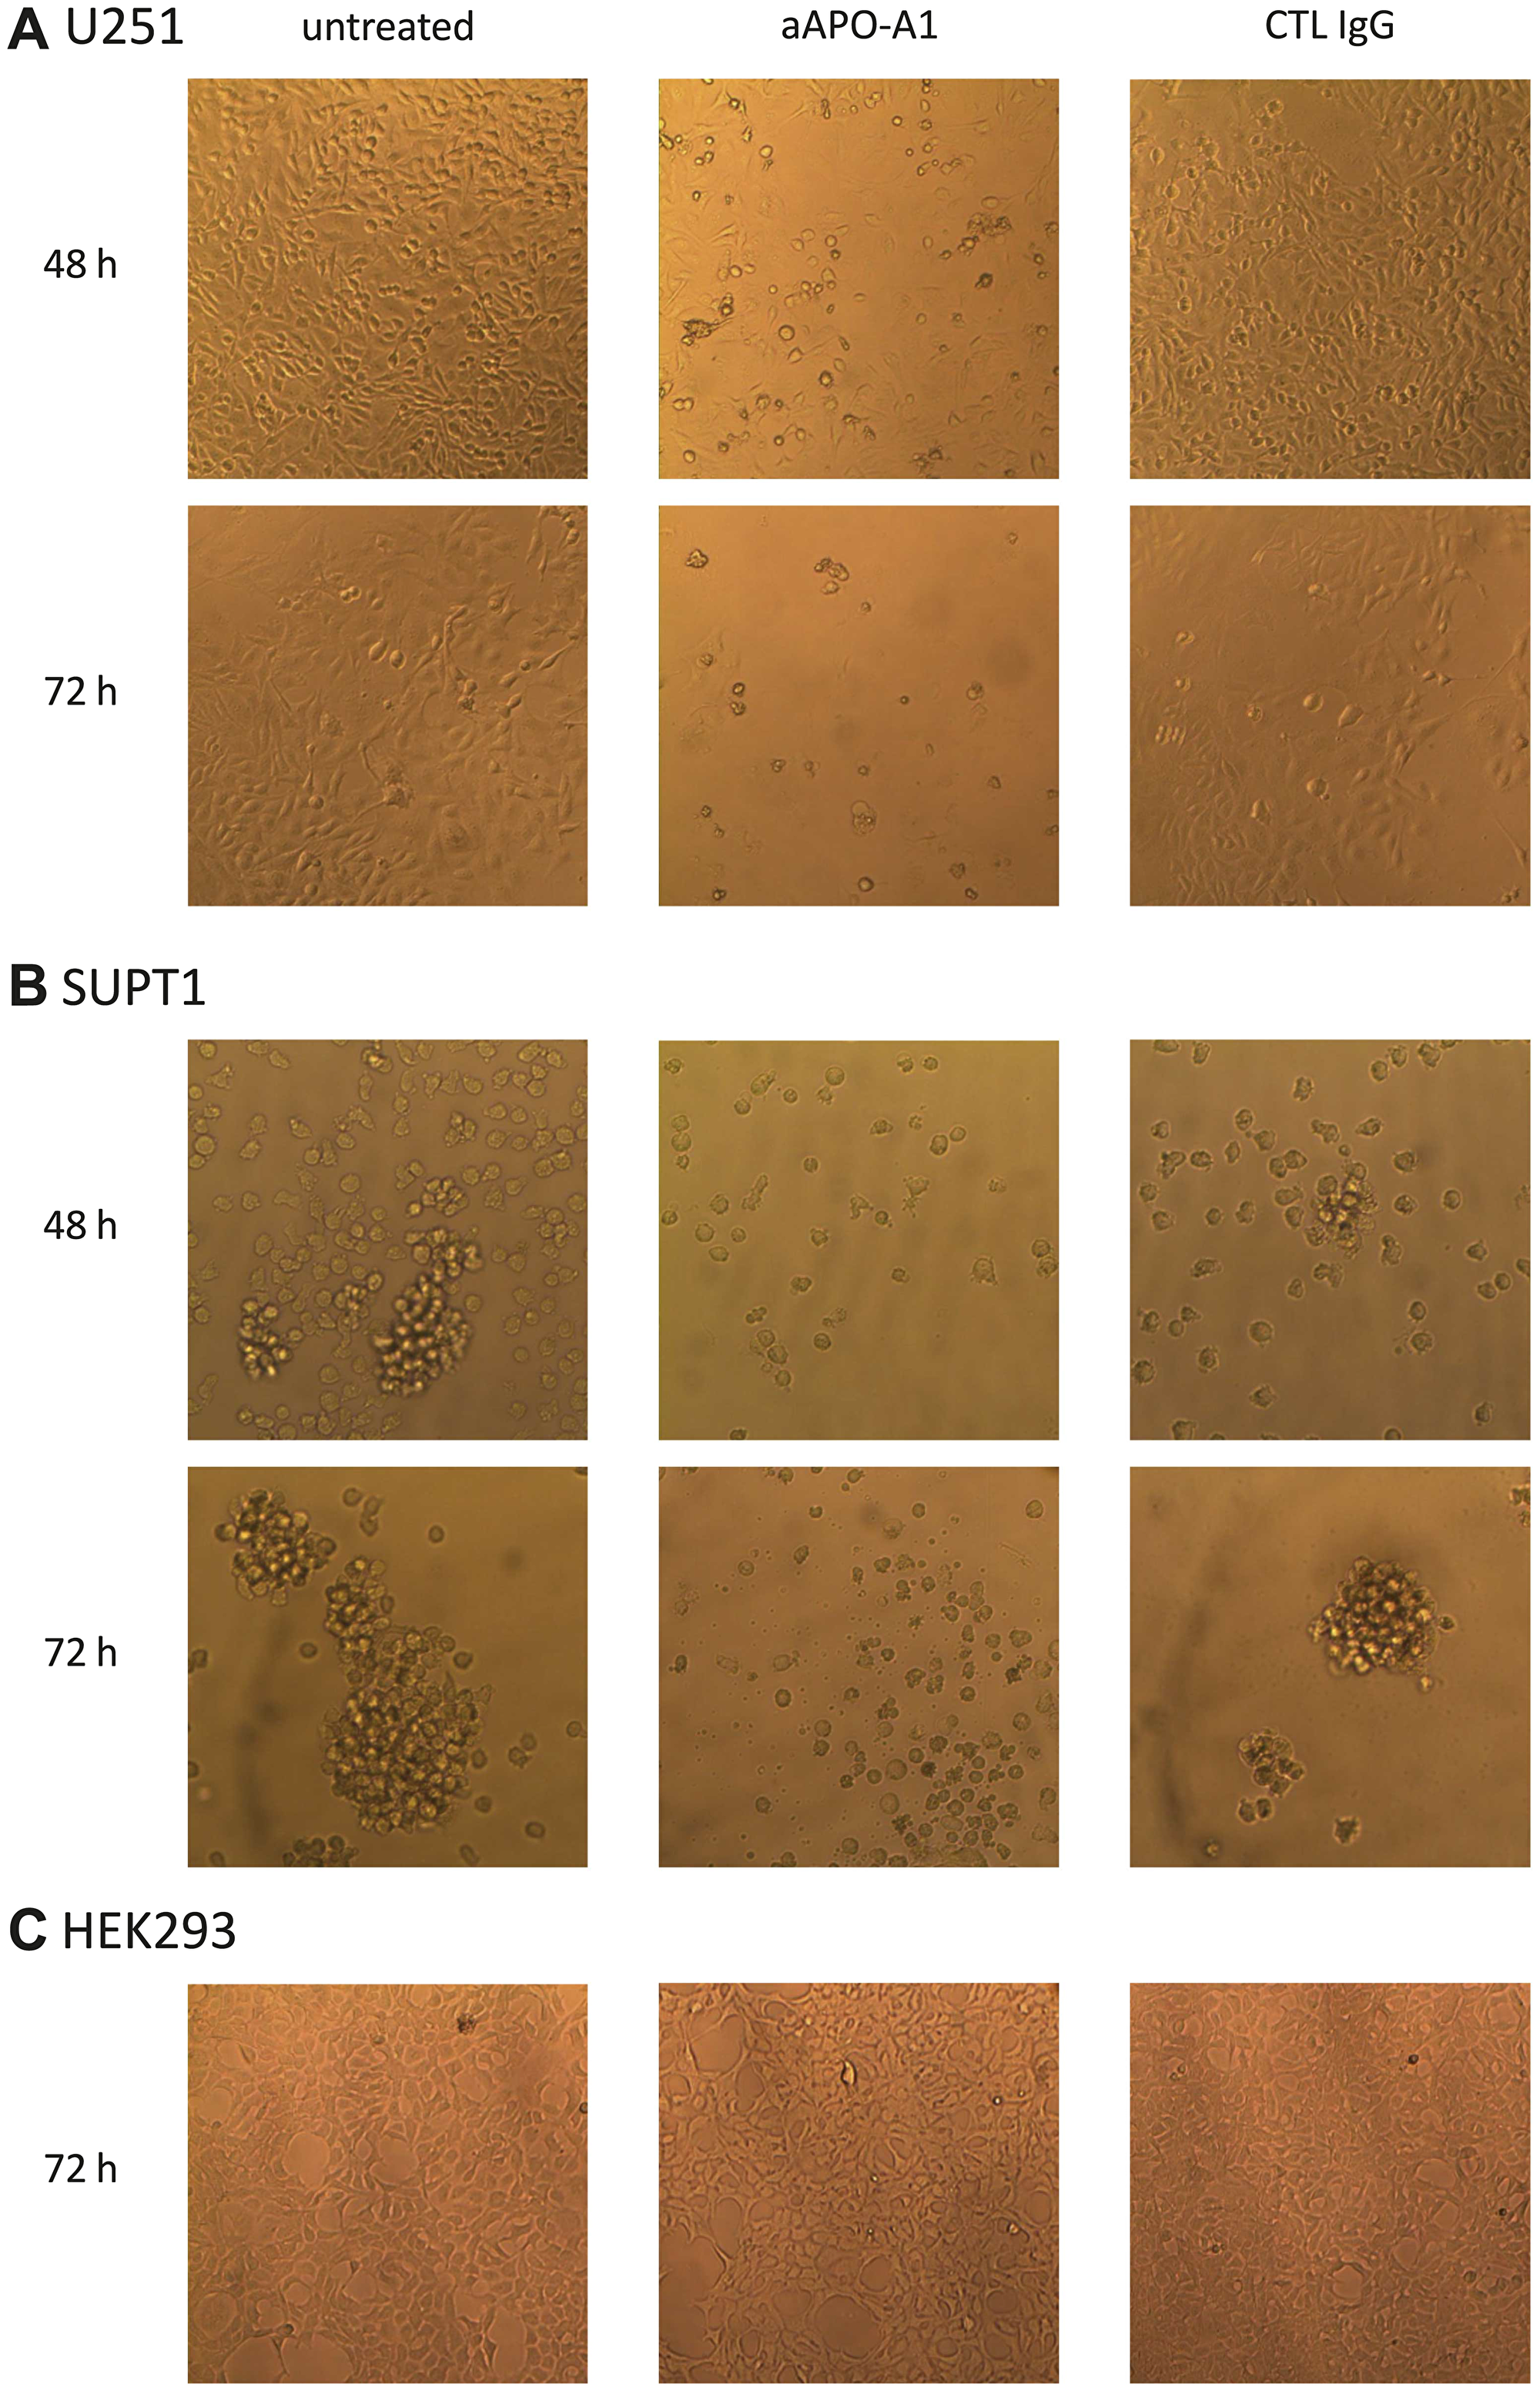 Morphology change of cells cultured in presence of anti-apoA-1 IgG or control isotype IgG.